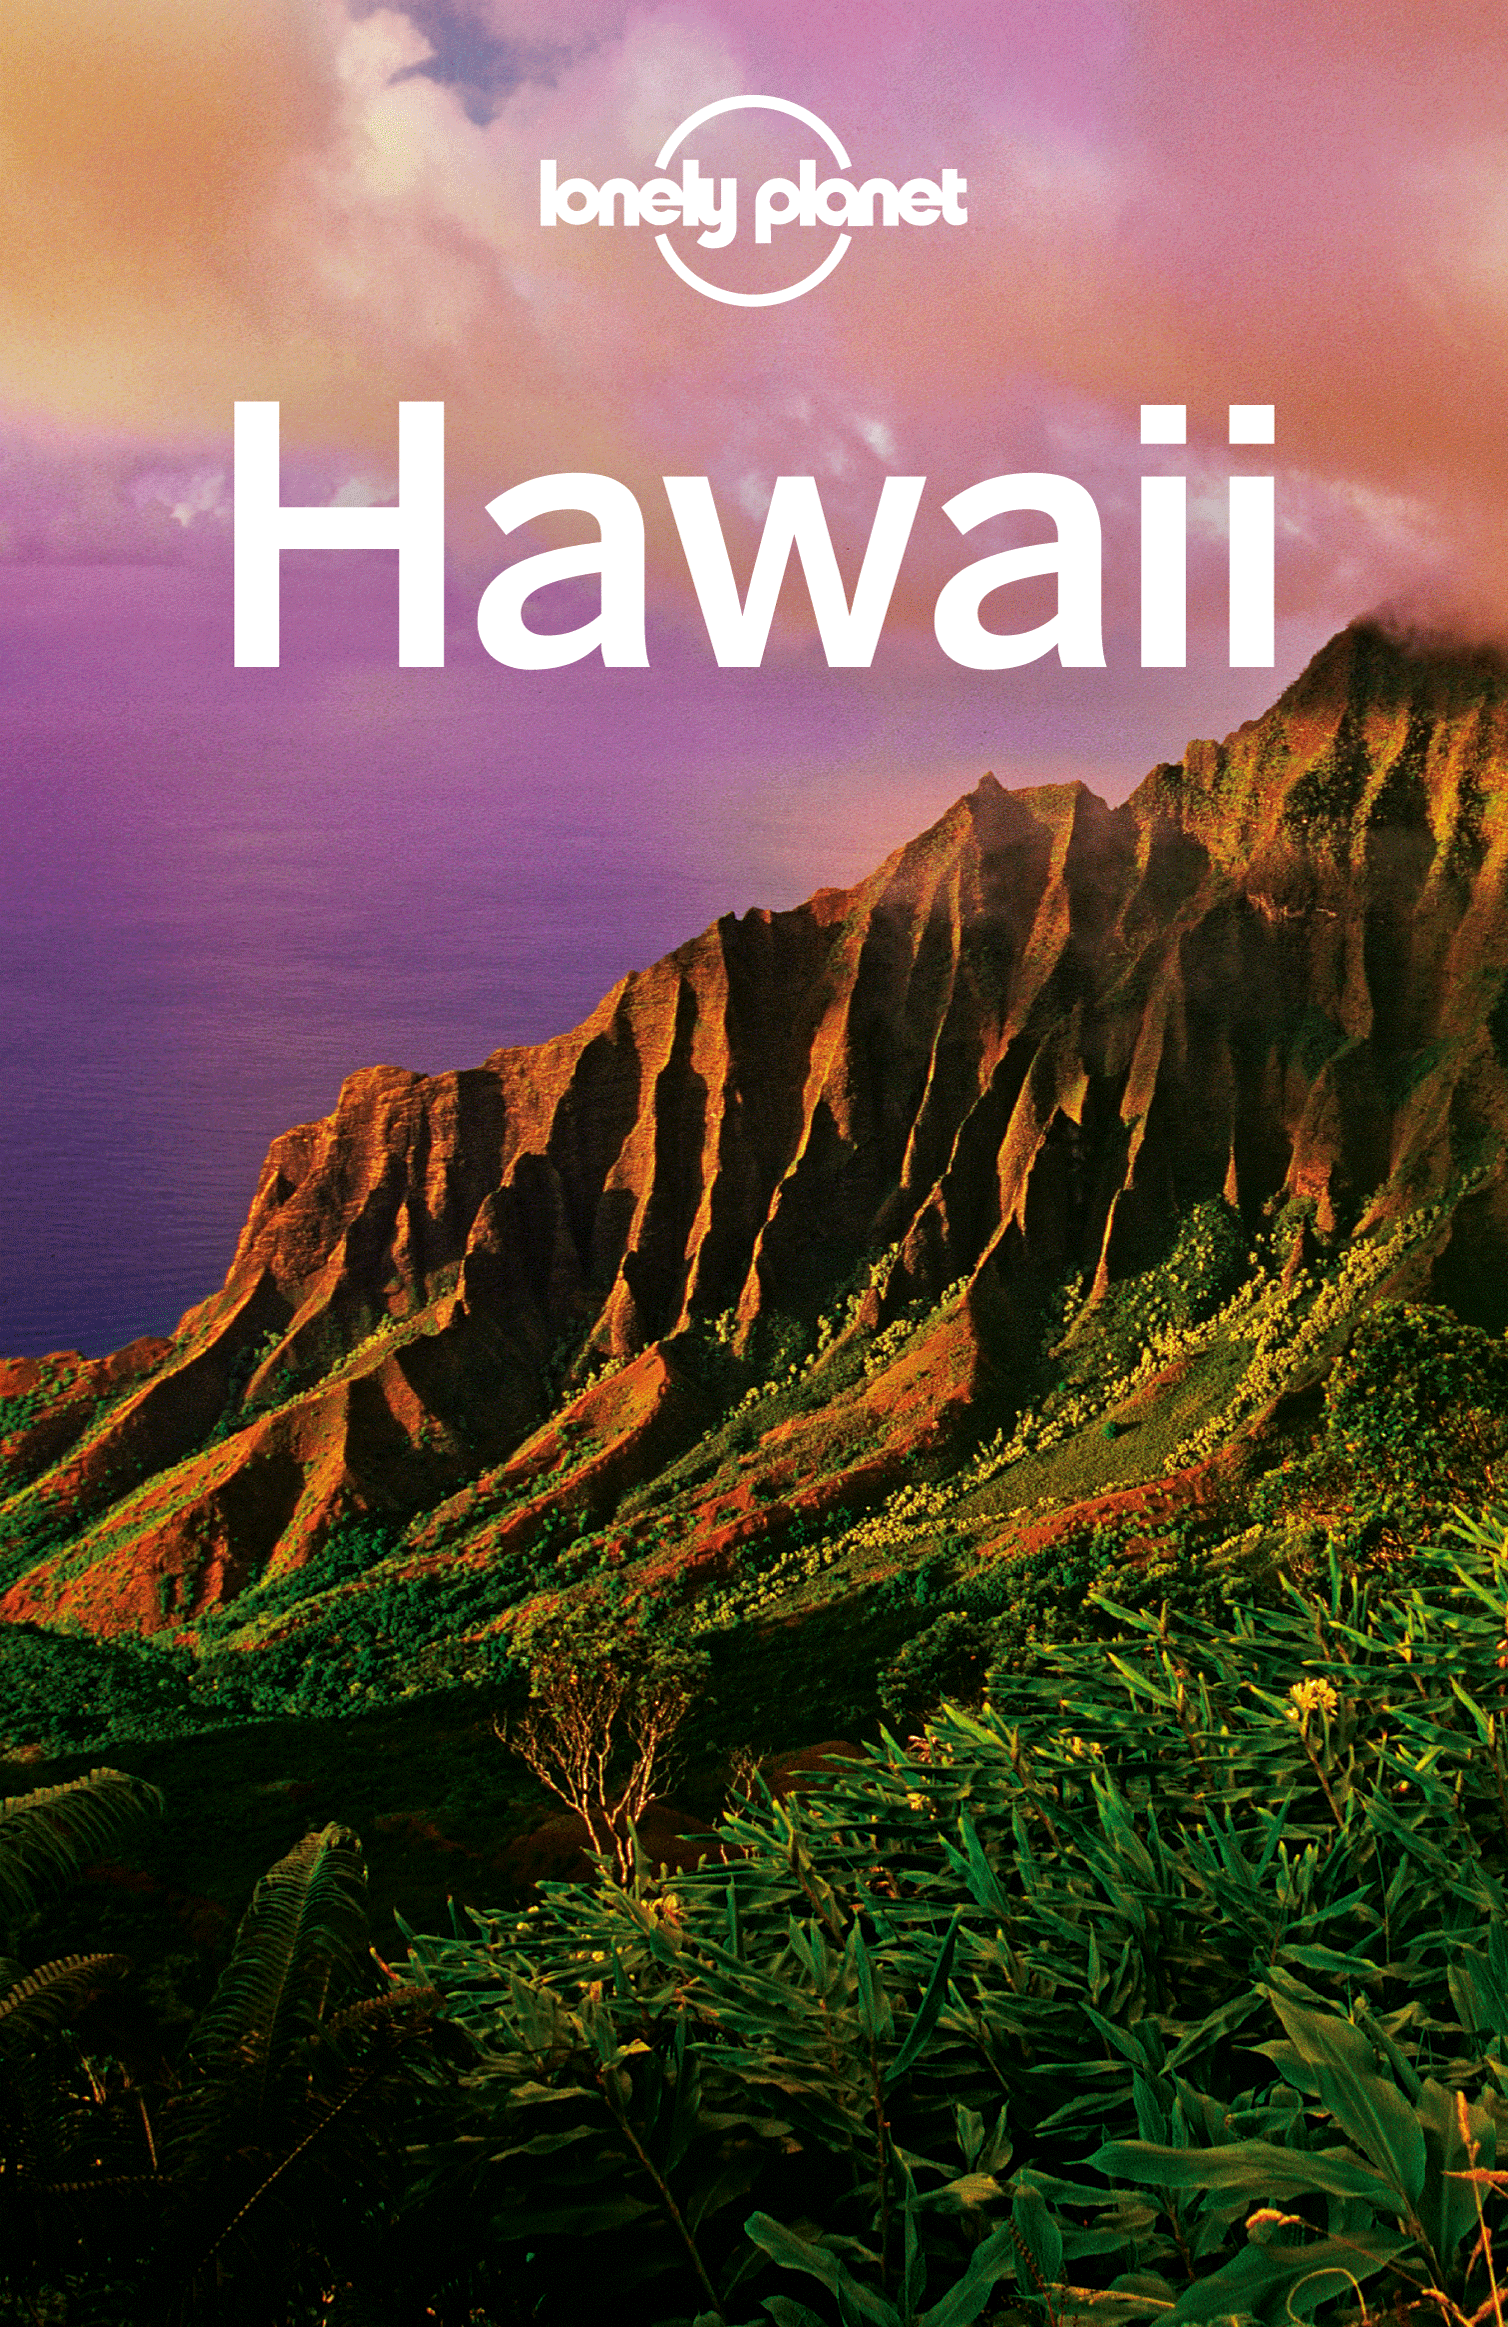 Lonely Planet Hawaii By: Amy C Balfour,Conner Gorry,E Clark Carroll,Glenda Bendure,Lonely Planet,Luci Yamamoto,Ned Friary,Ryan Ver Berkmoes,Sara Benson